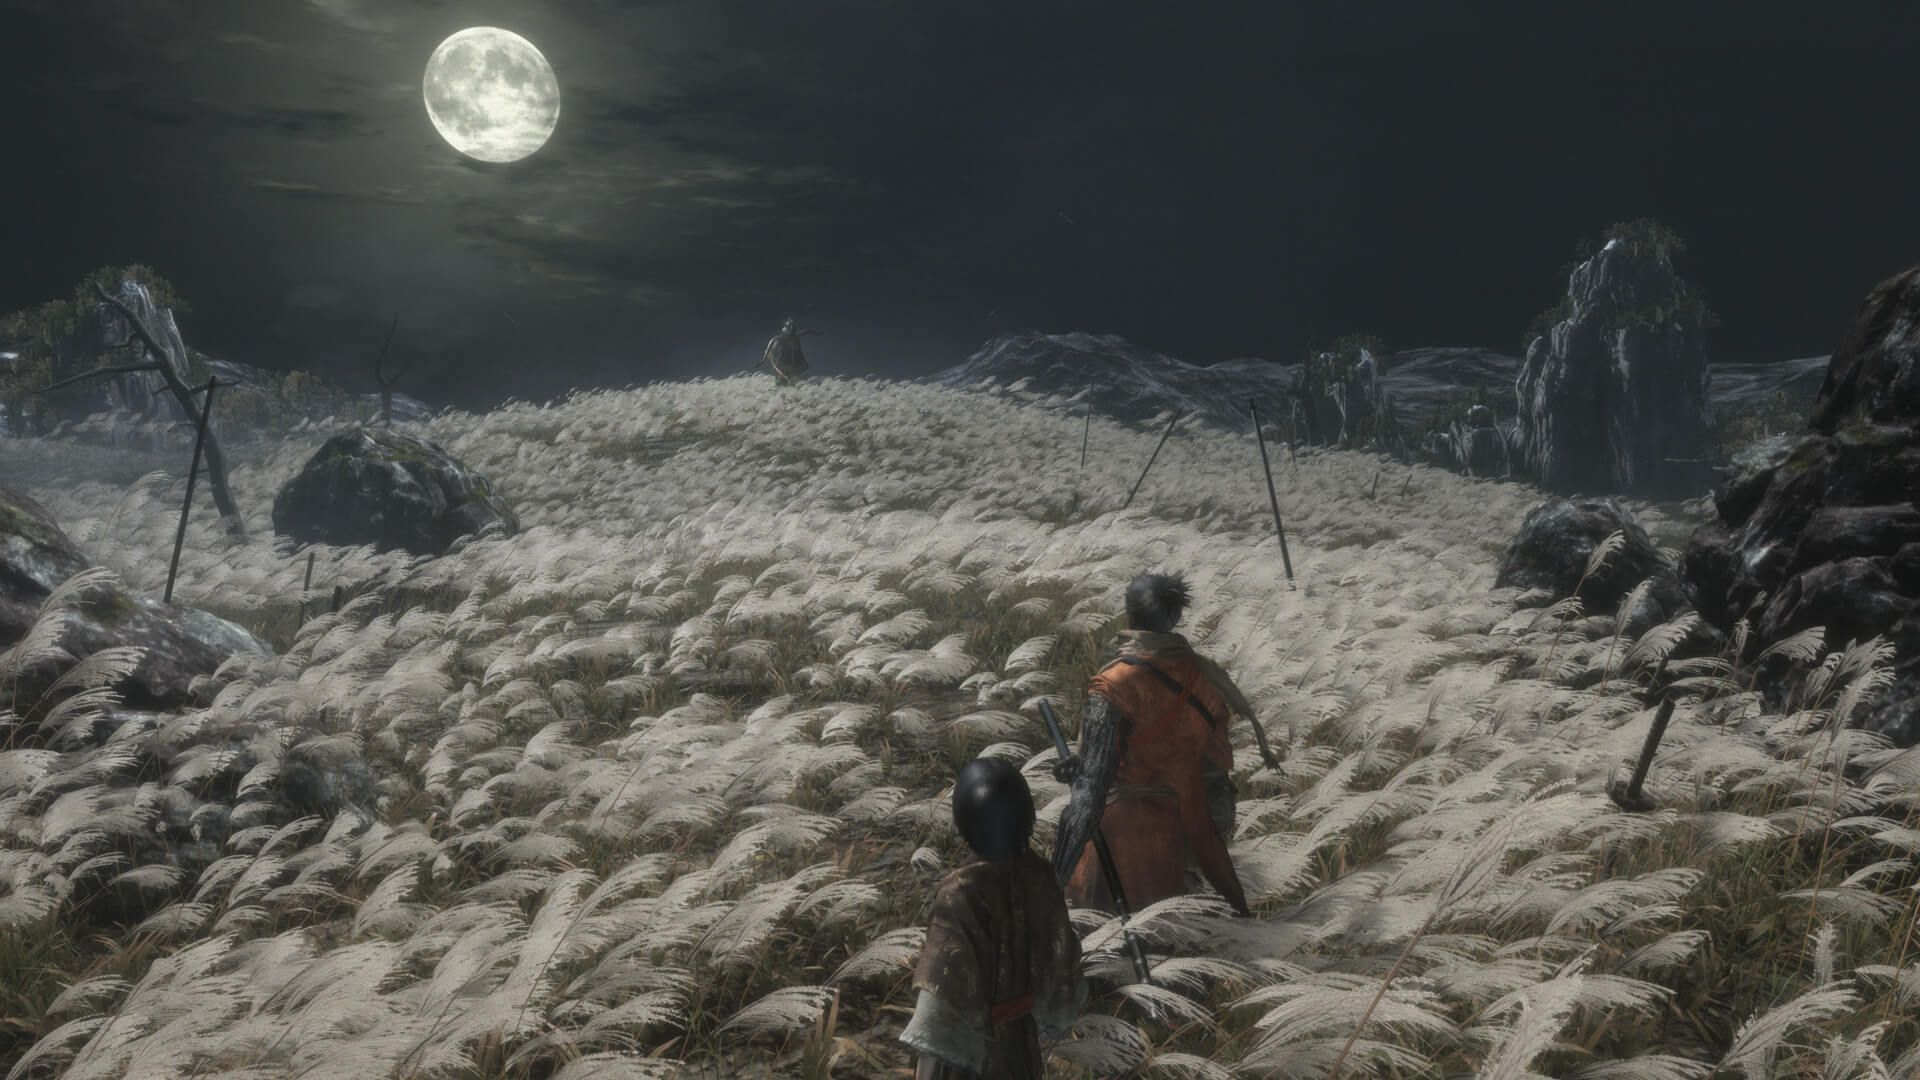 Sekiro Shadows Die Twice Is Receiving Free Content That Will Extend Game Play Fromsoftware Pcmac Playstation Sekiroshad In 2020 Dark Souls Shadow From Software